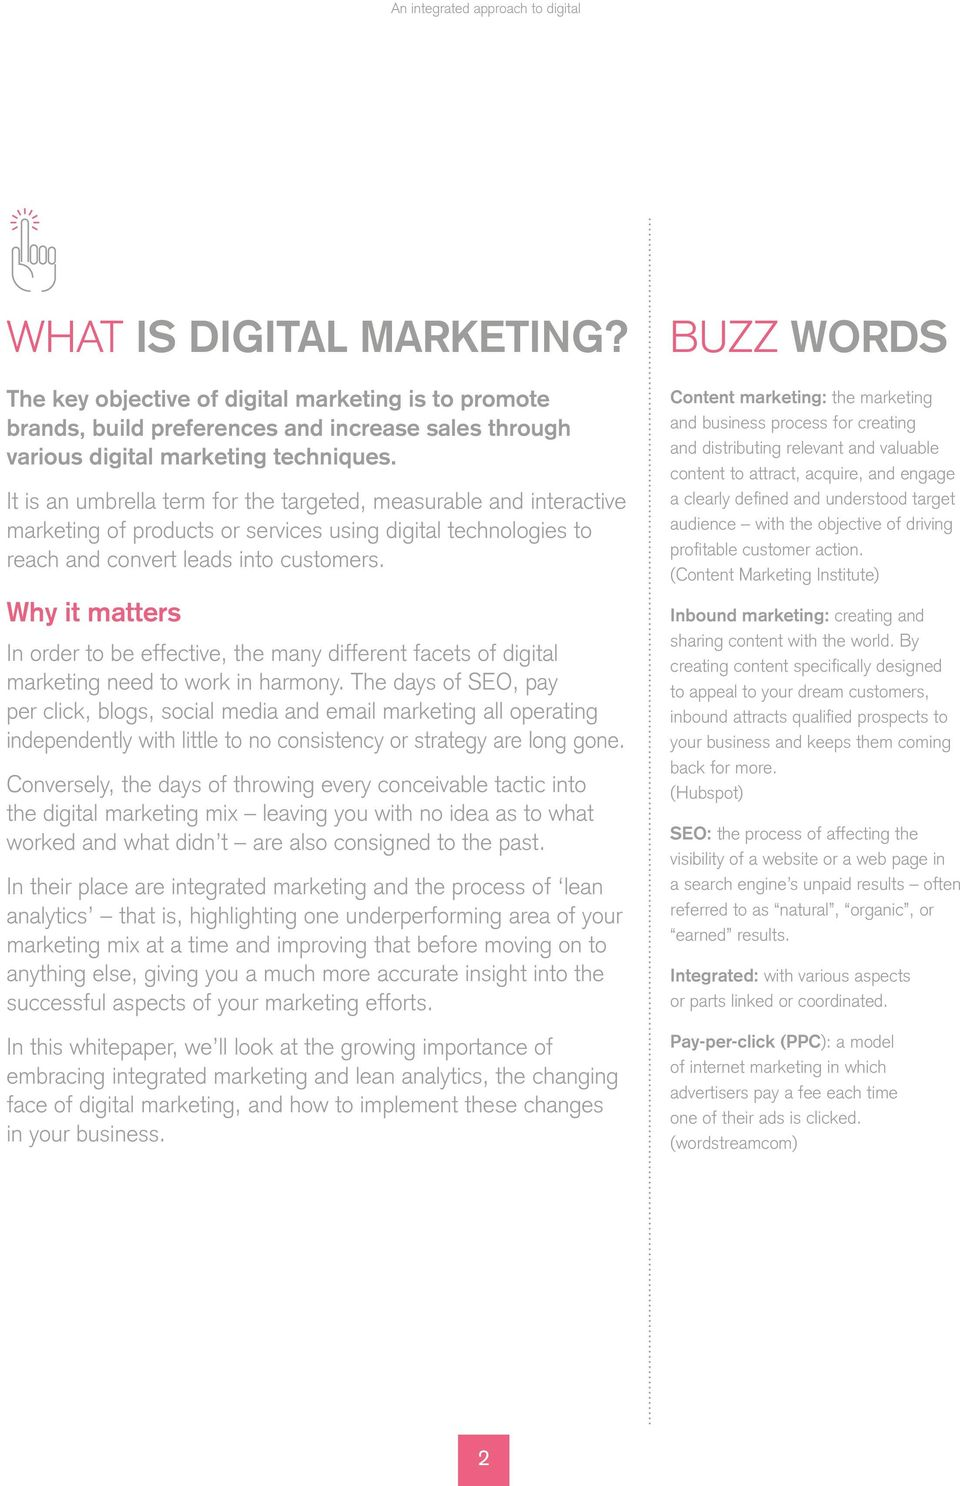 Why it matters In order to be effective, the many different facets of digital marketing need to work in harmony.